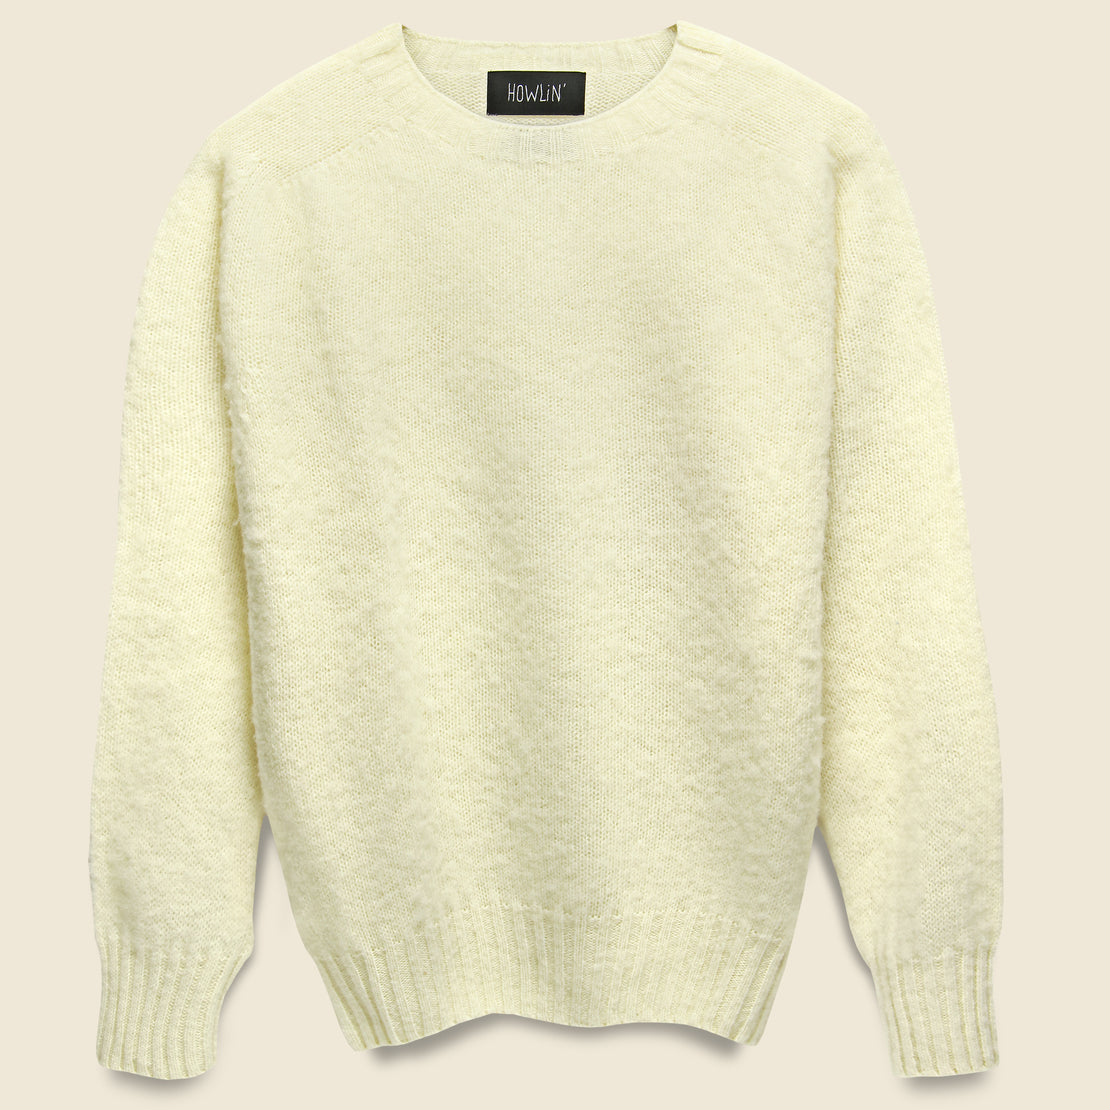 Howlin Babs Sweater - White